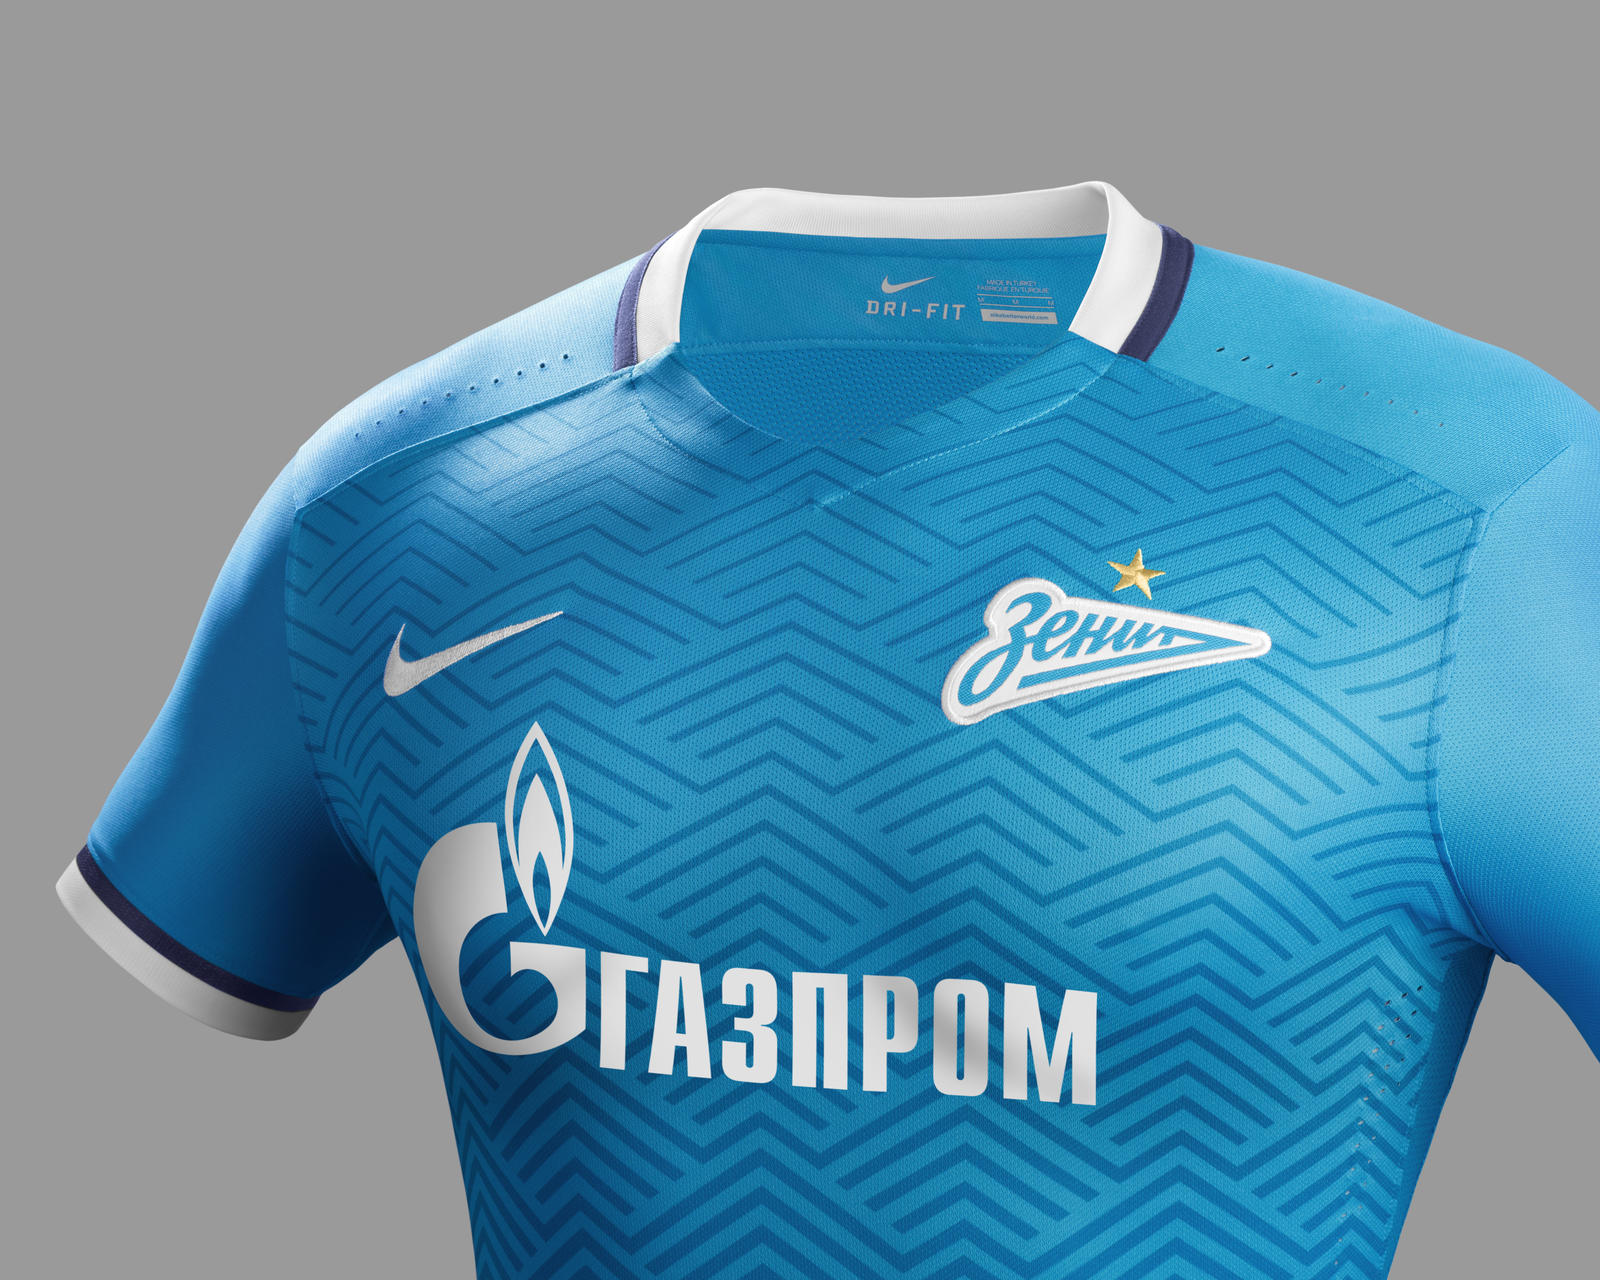 Nike Zenit Home Kit Crest